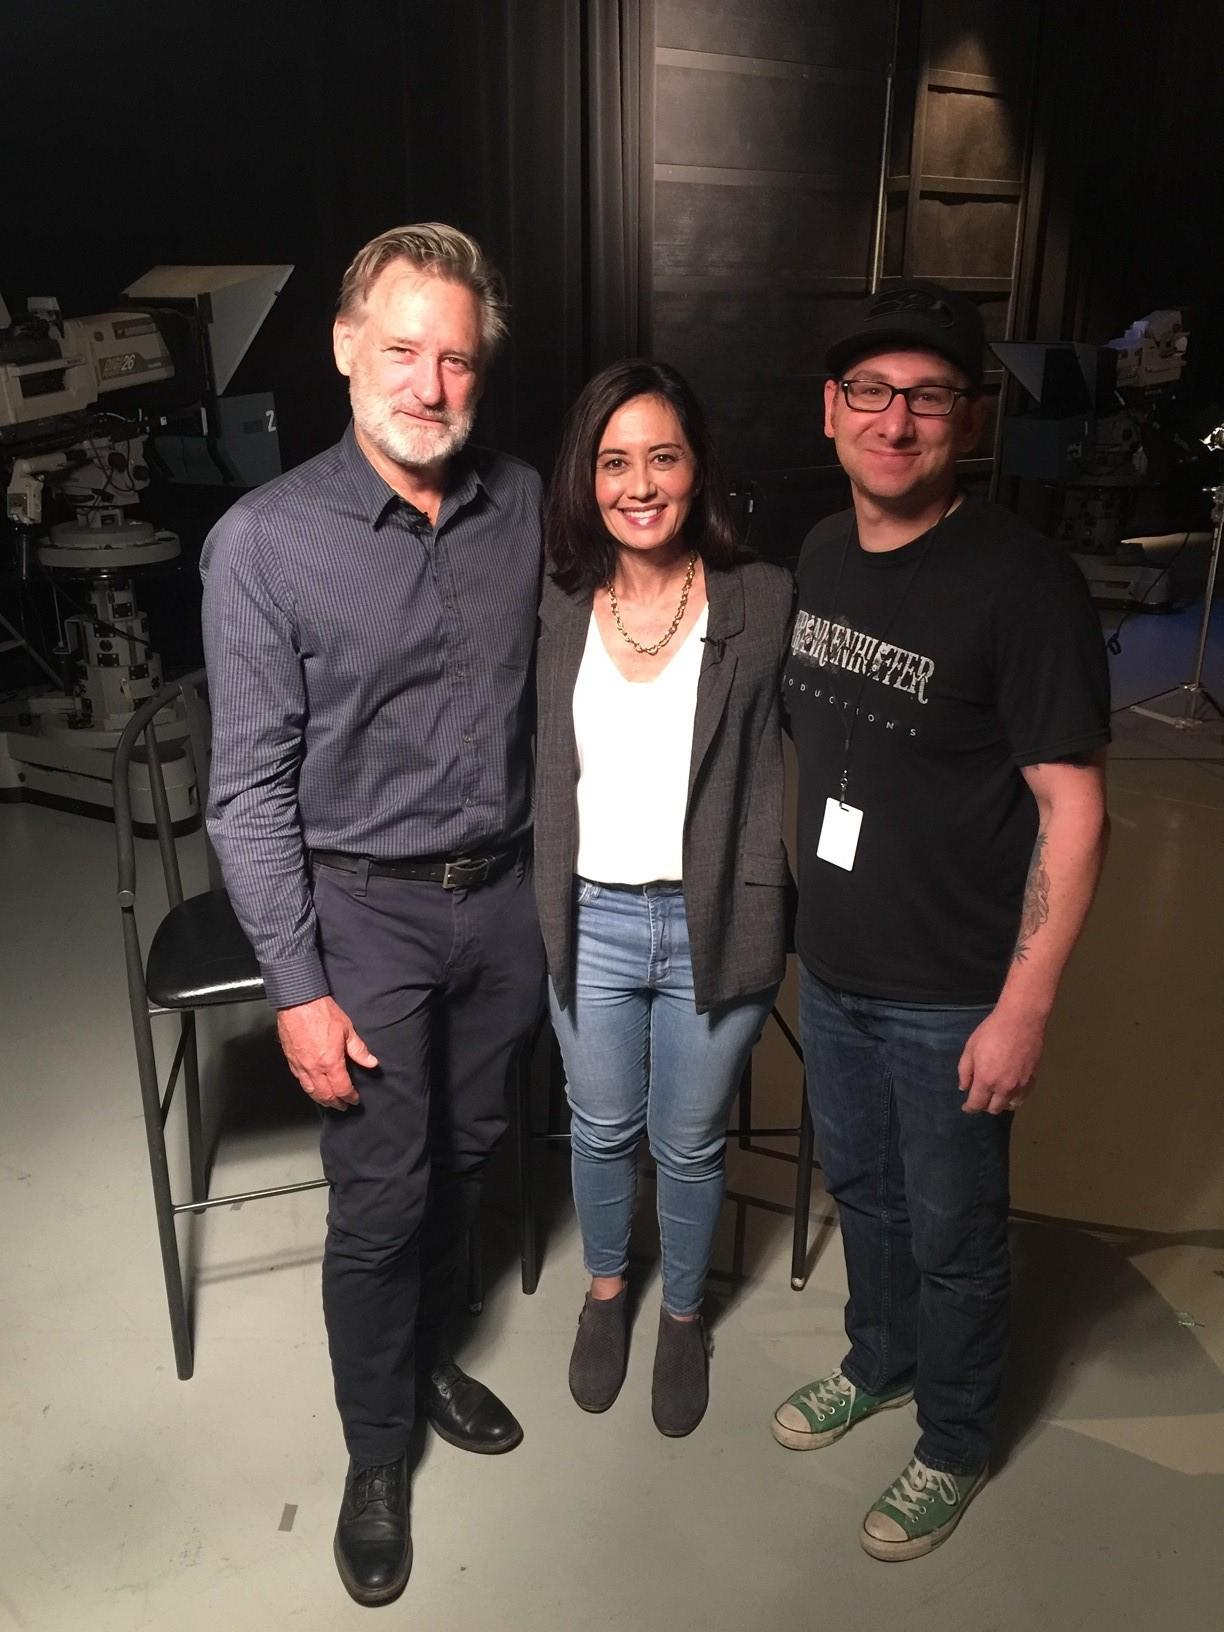 Bill Pullman, Malia Karlinsky and Ty Huffer.{ } (Image: Seattle Refined)